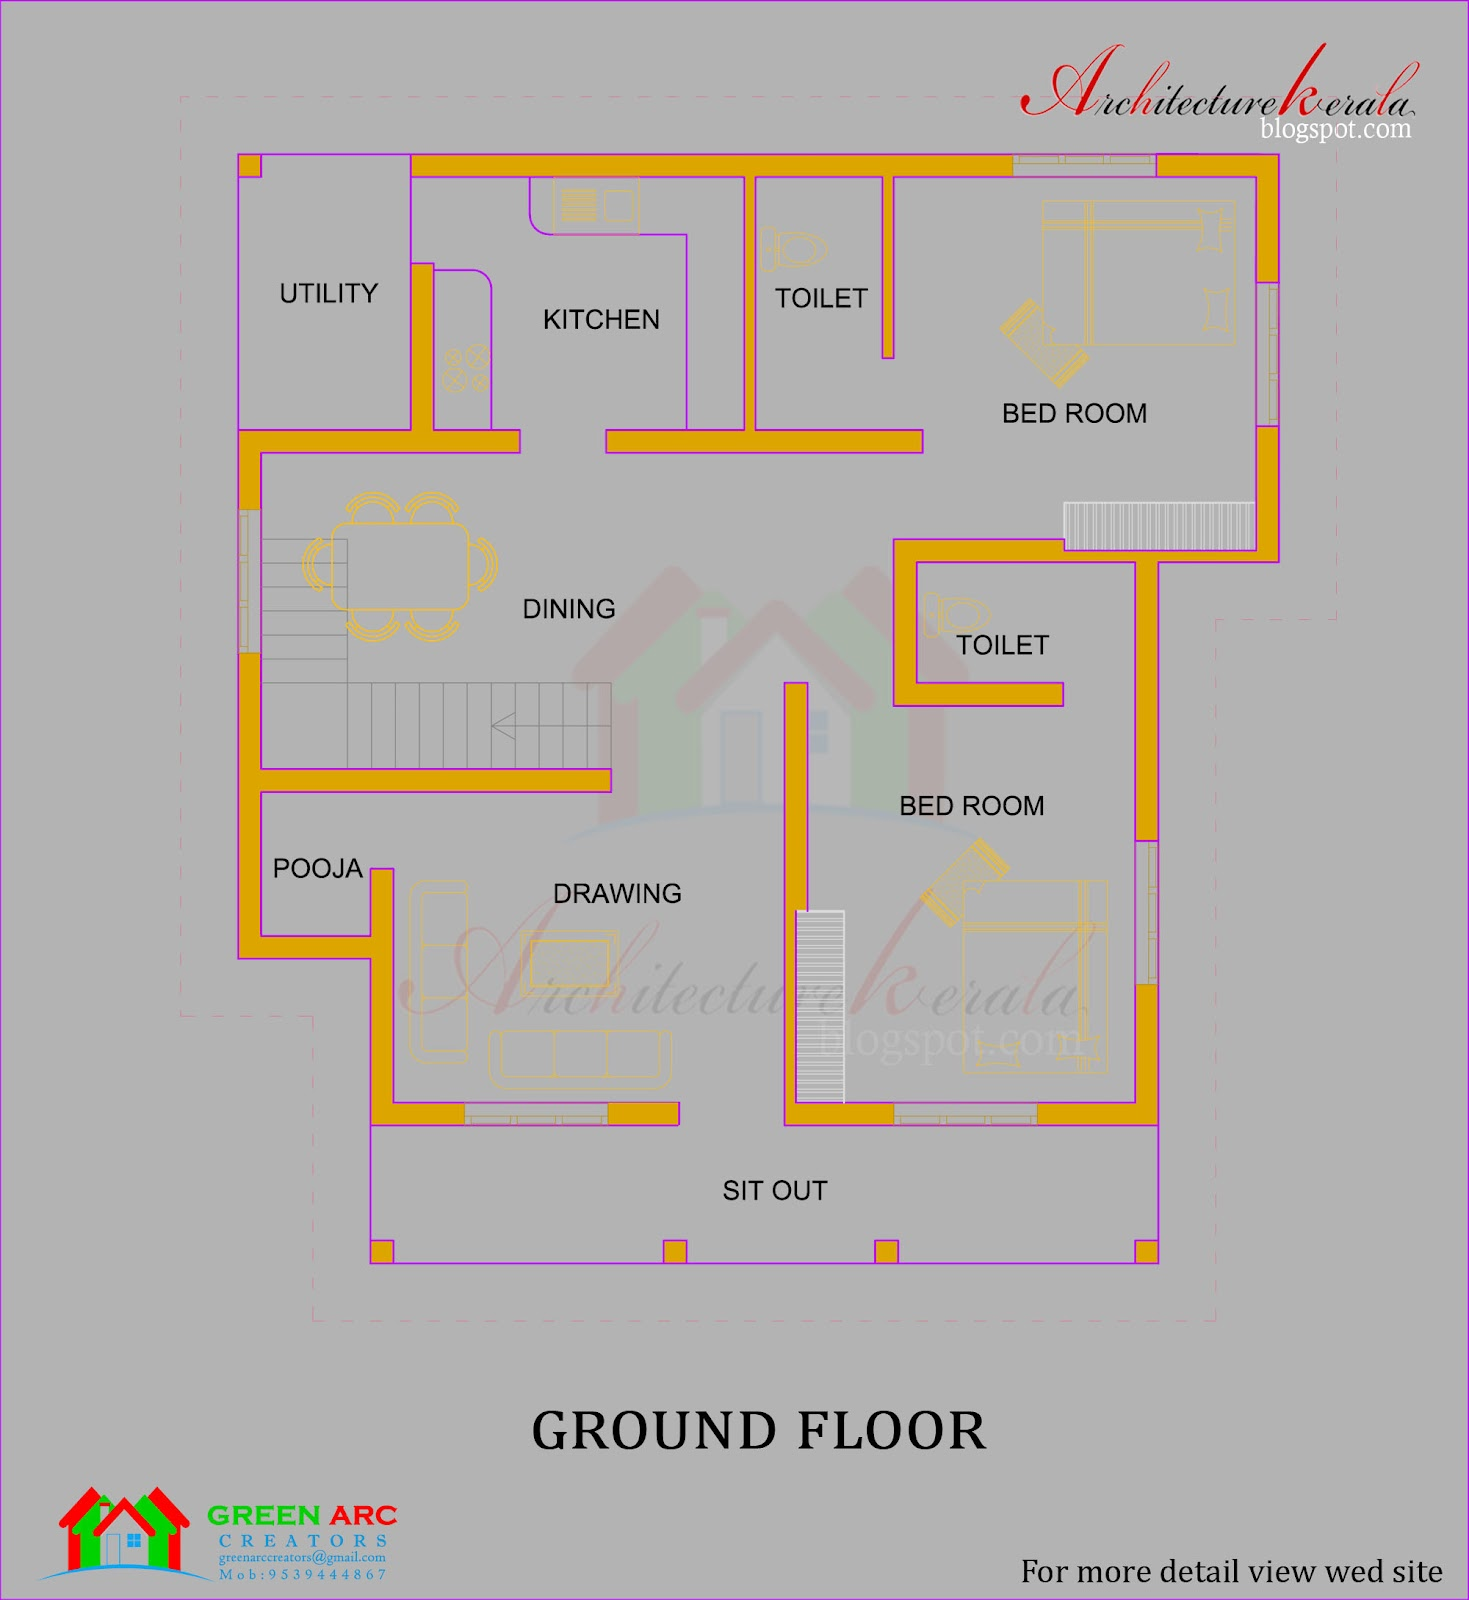 Architecture kerala traditional style kerala house plan for Kerala traditional home plans with photos